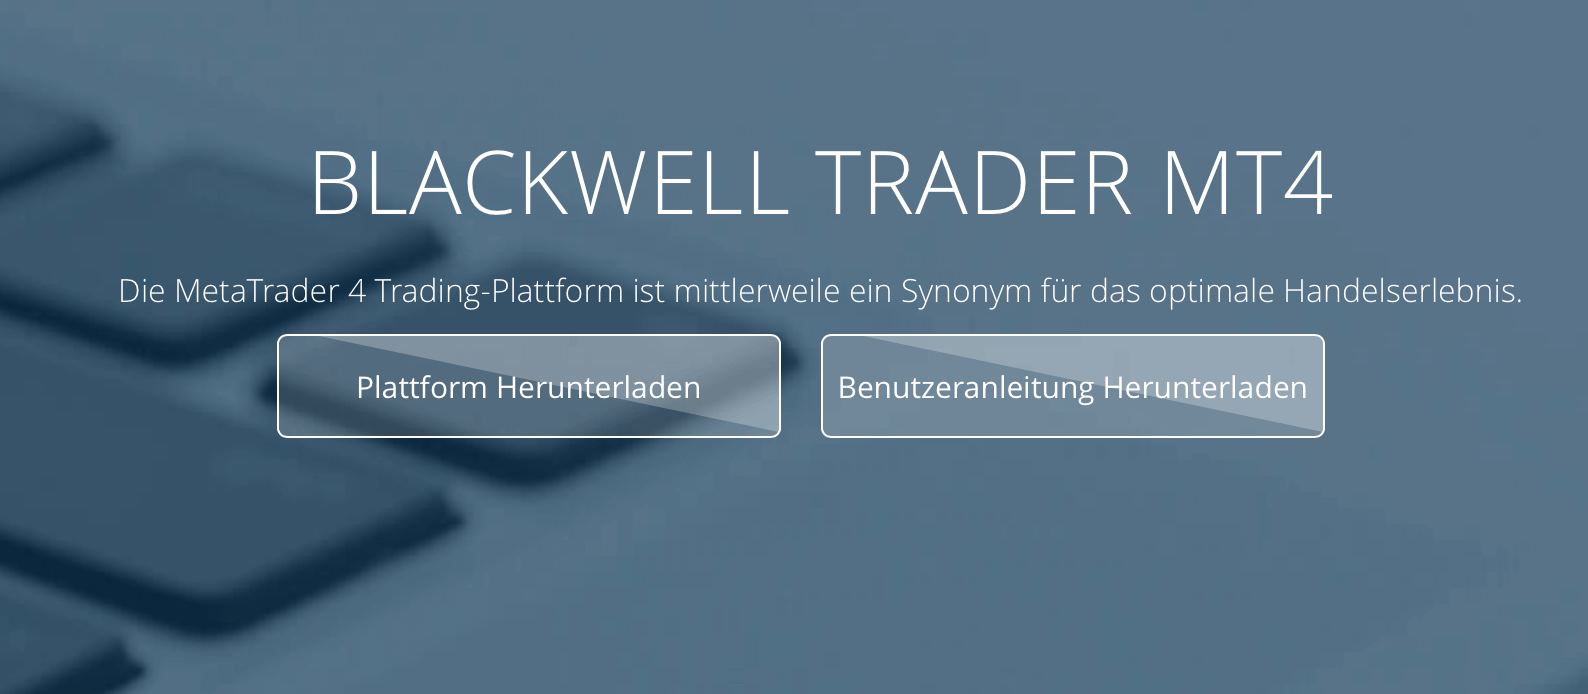 Blackwell Global Handelsplattform